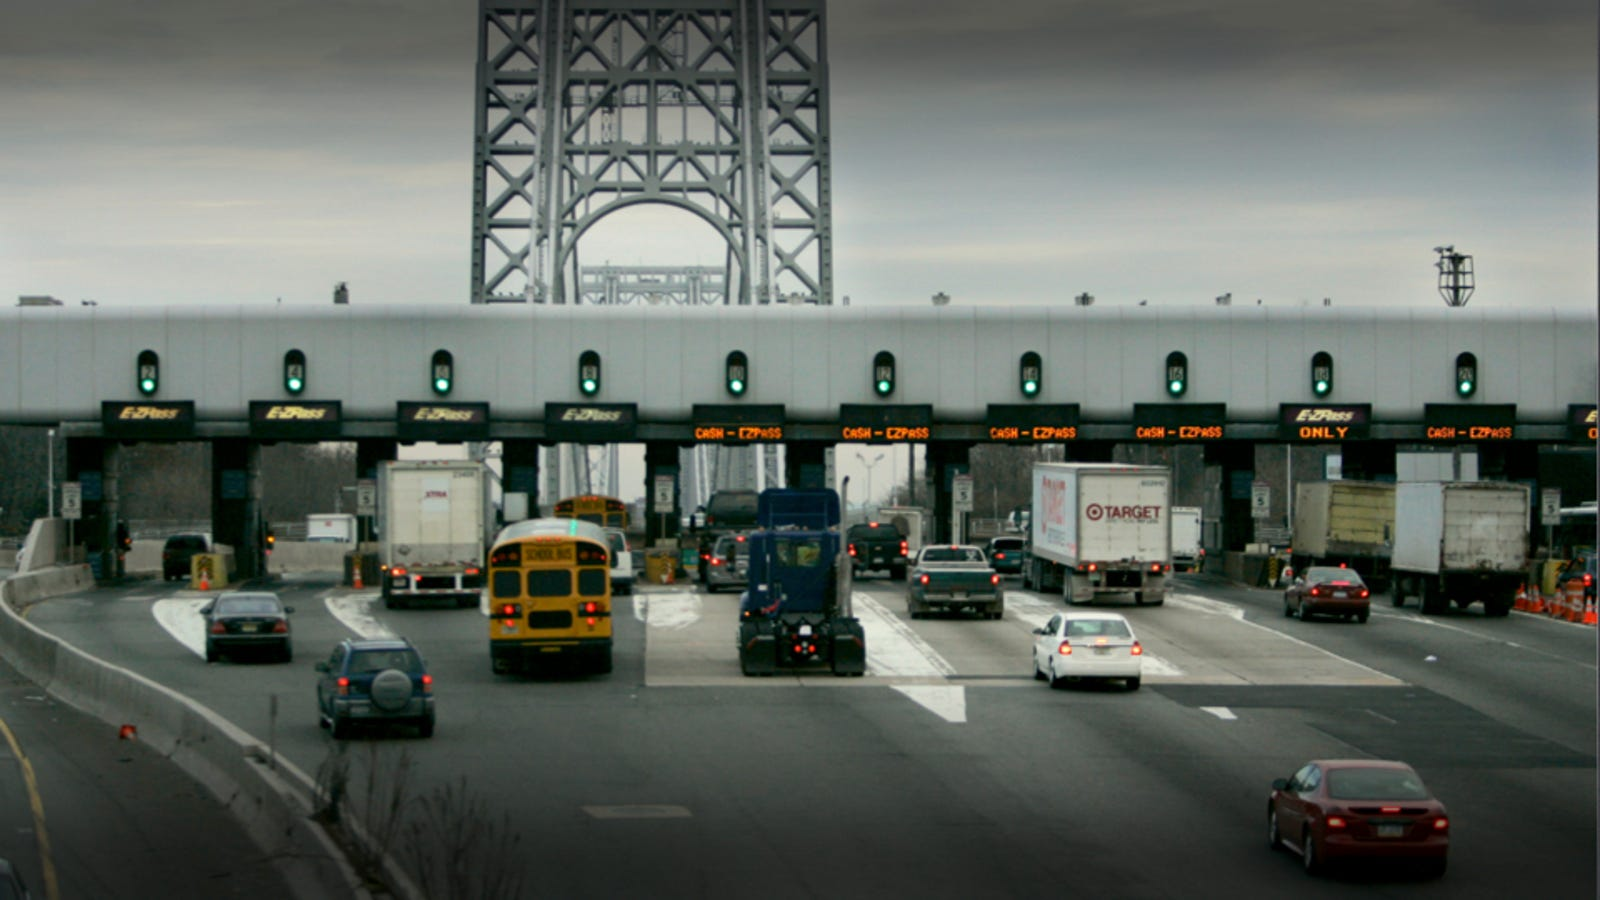 Police Arrest NYC Truck Driver With $25,000 In Unpaid Tolls